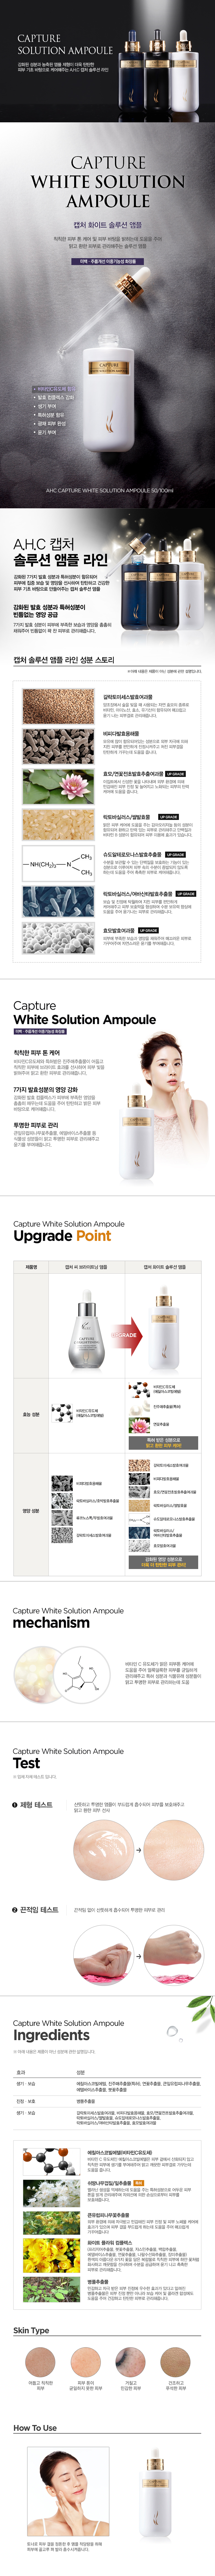 AHC Capture White Solution Ampoule 100ml malaysia singapore indonesia